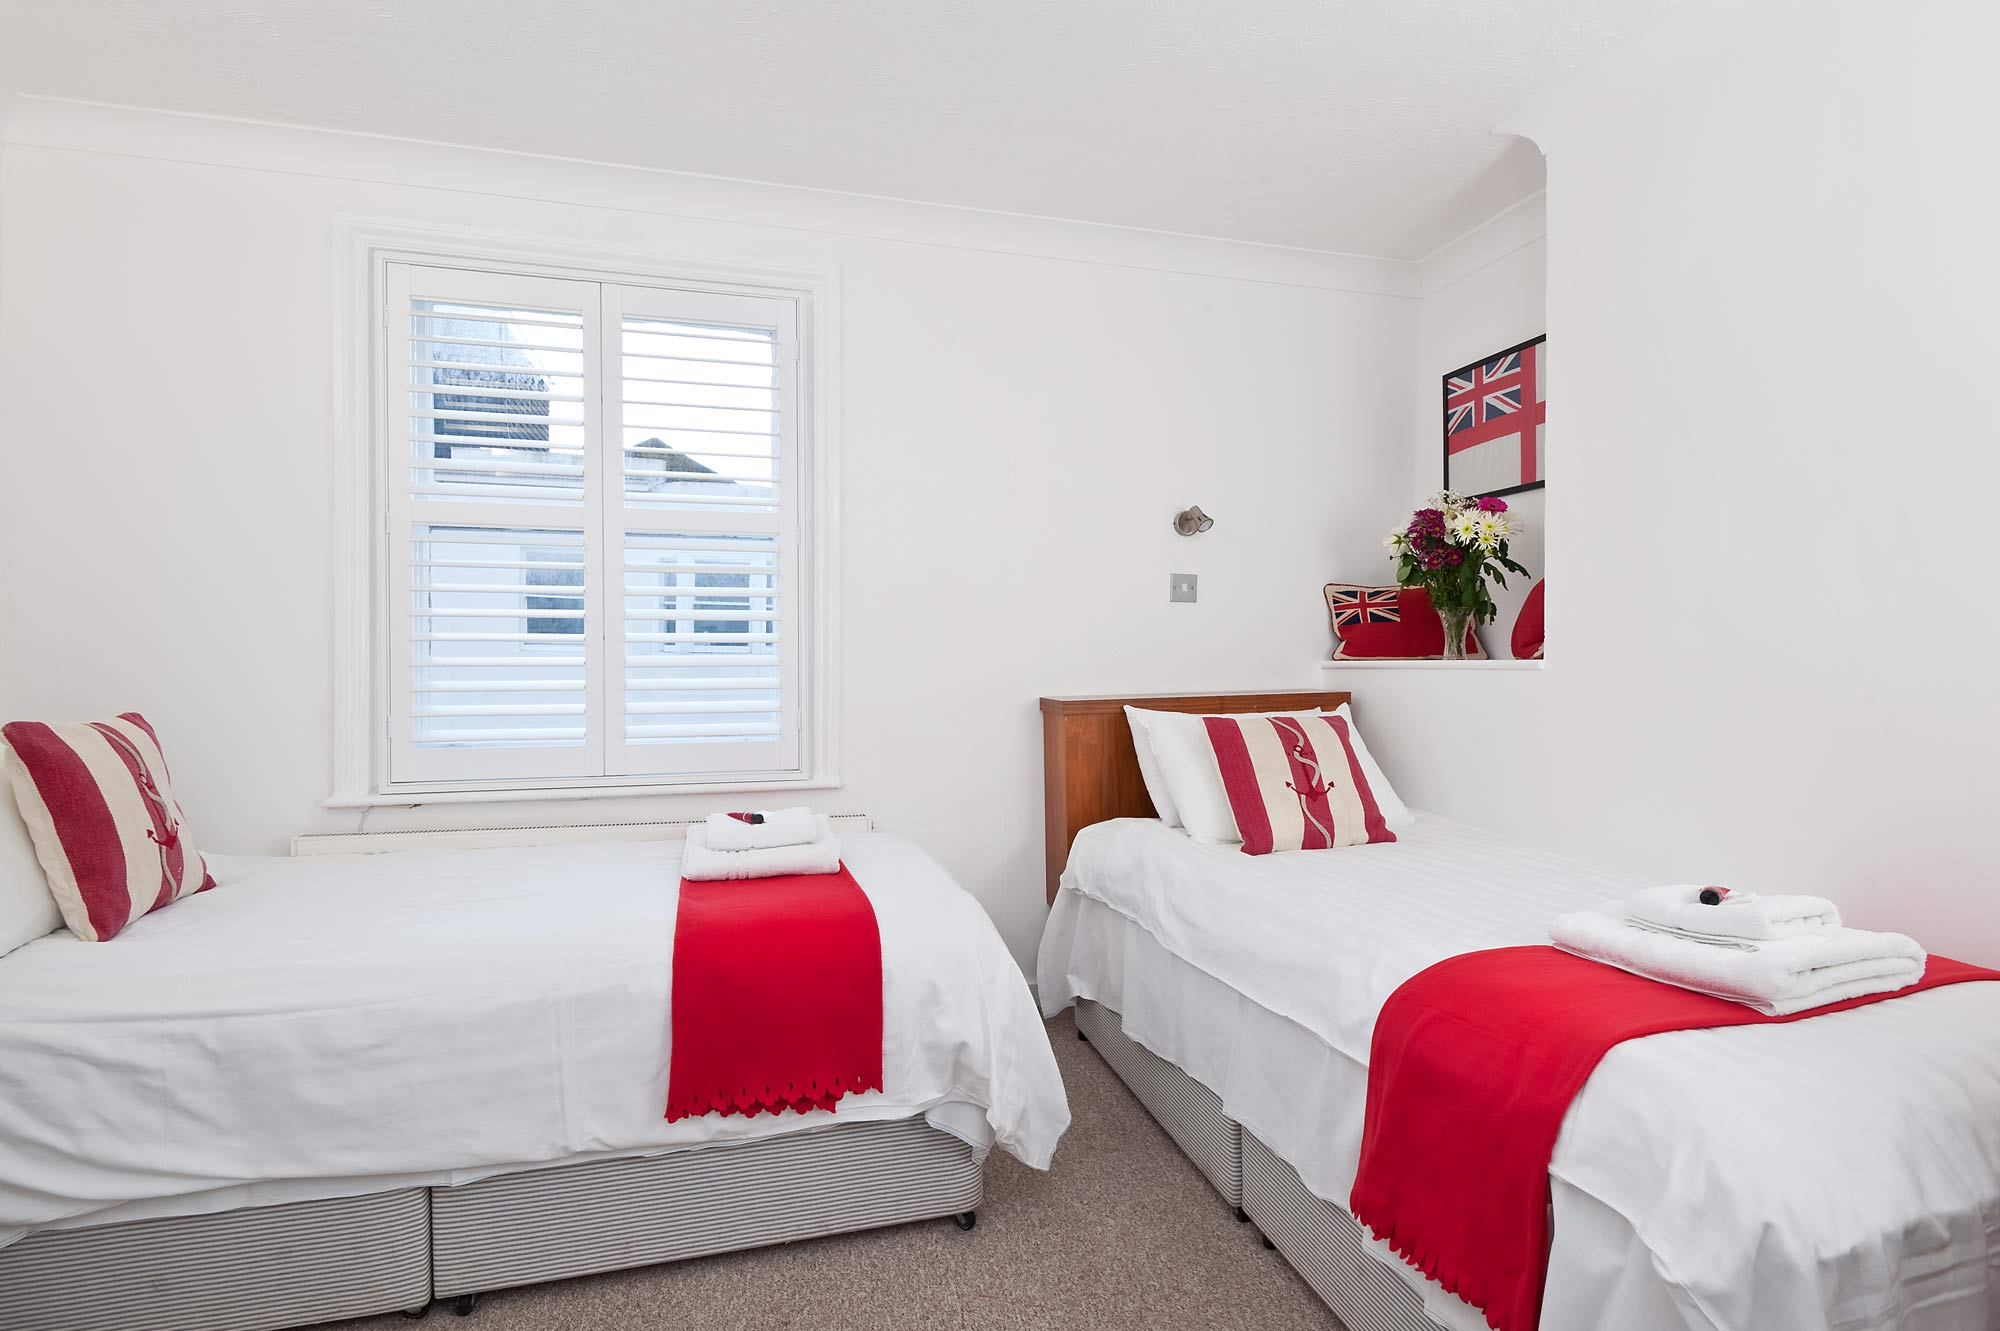 Comfortable Rooms at a Great Price